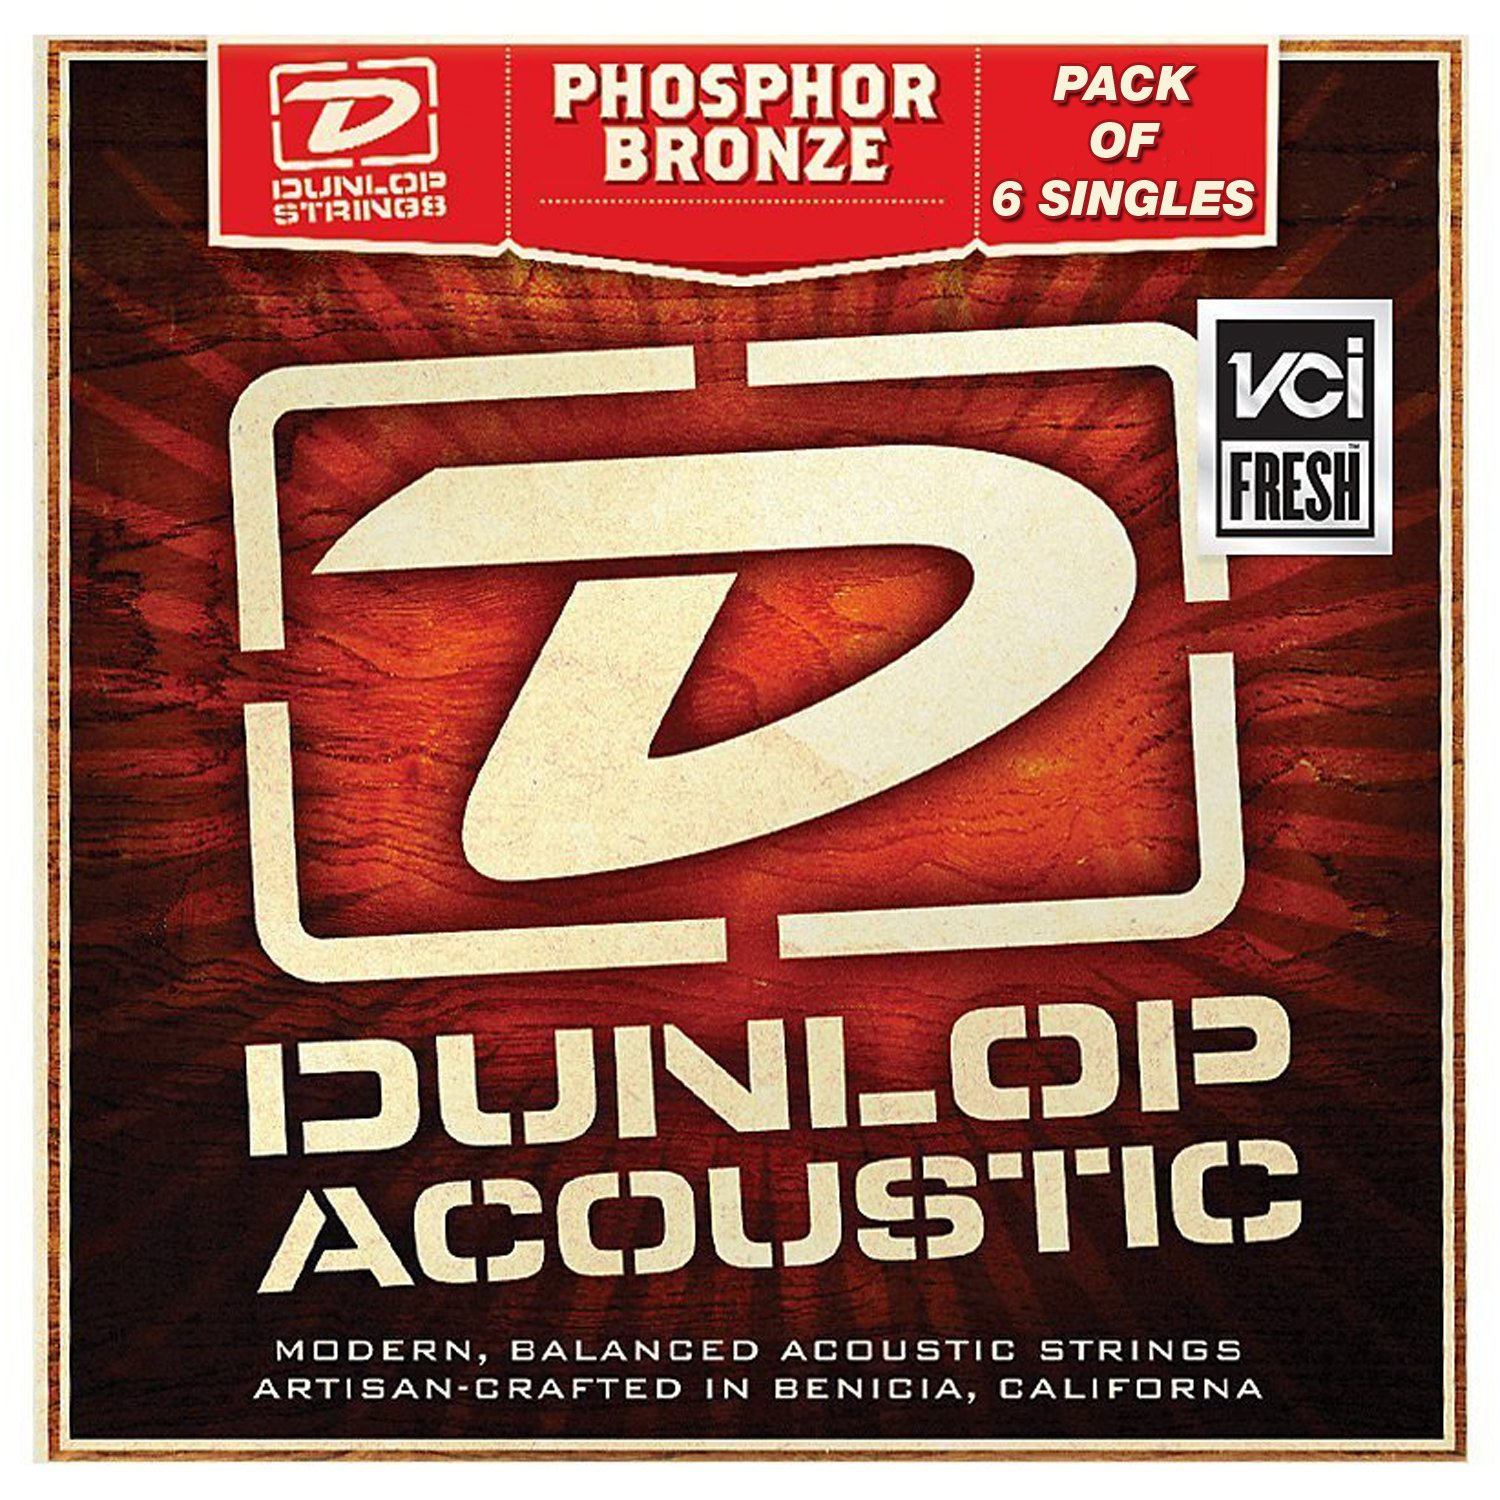 Performance Plus (by Dunlop) DAP47-6 Phosphor Bronze Acoustic Guitar .47 Gauge, Extra Light E String - Pack of 6 Single Strings Kay Guitar Company